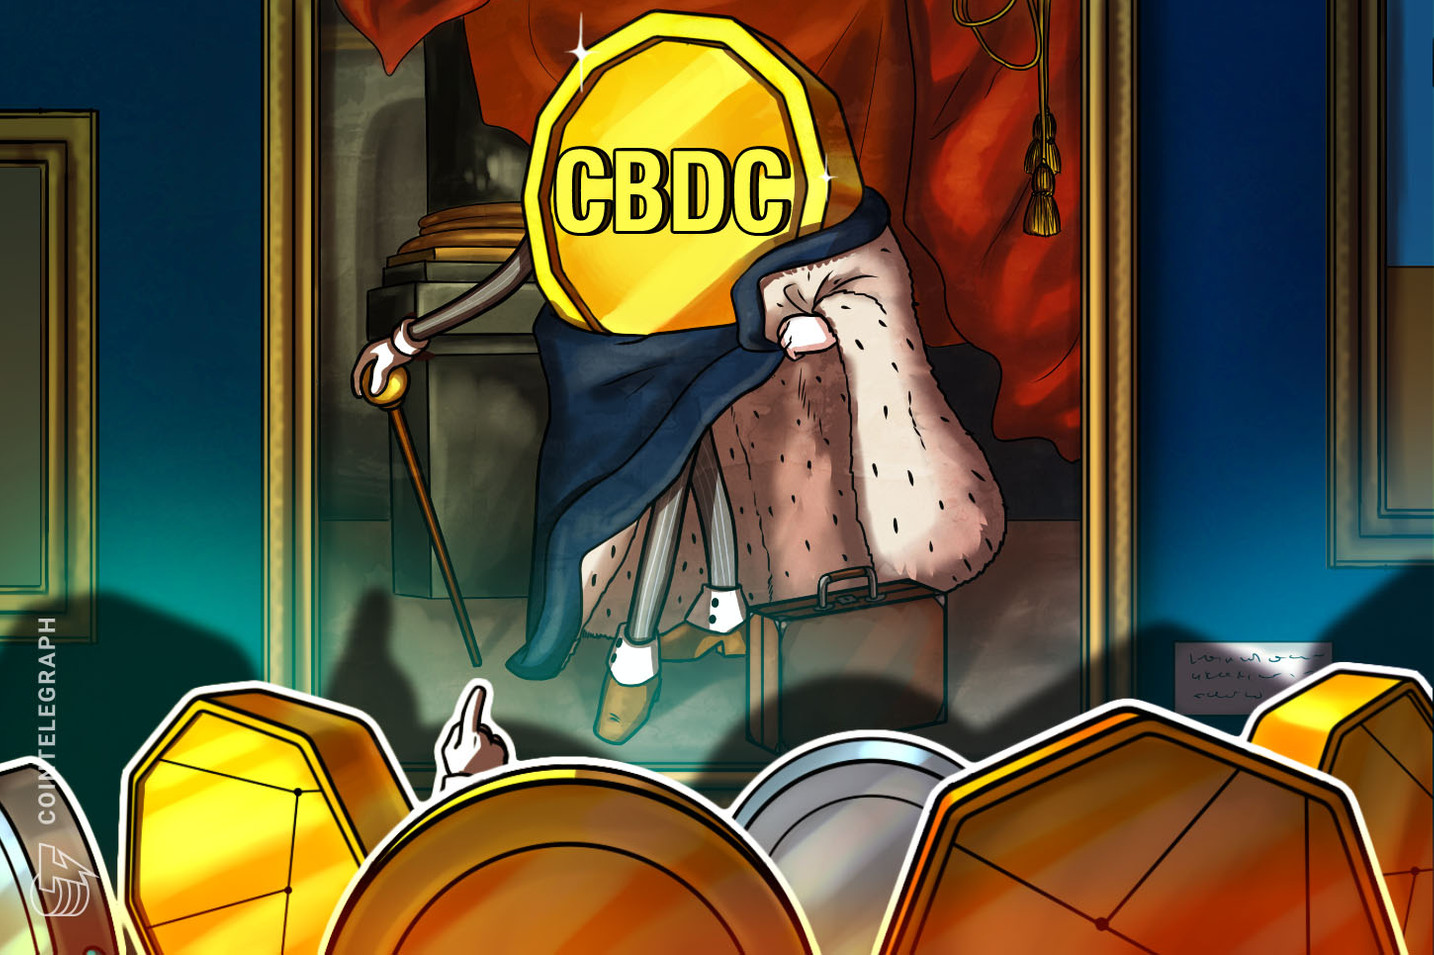 Decred Co-Founder: CBDCs Can Facilitate Crony Capitalism